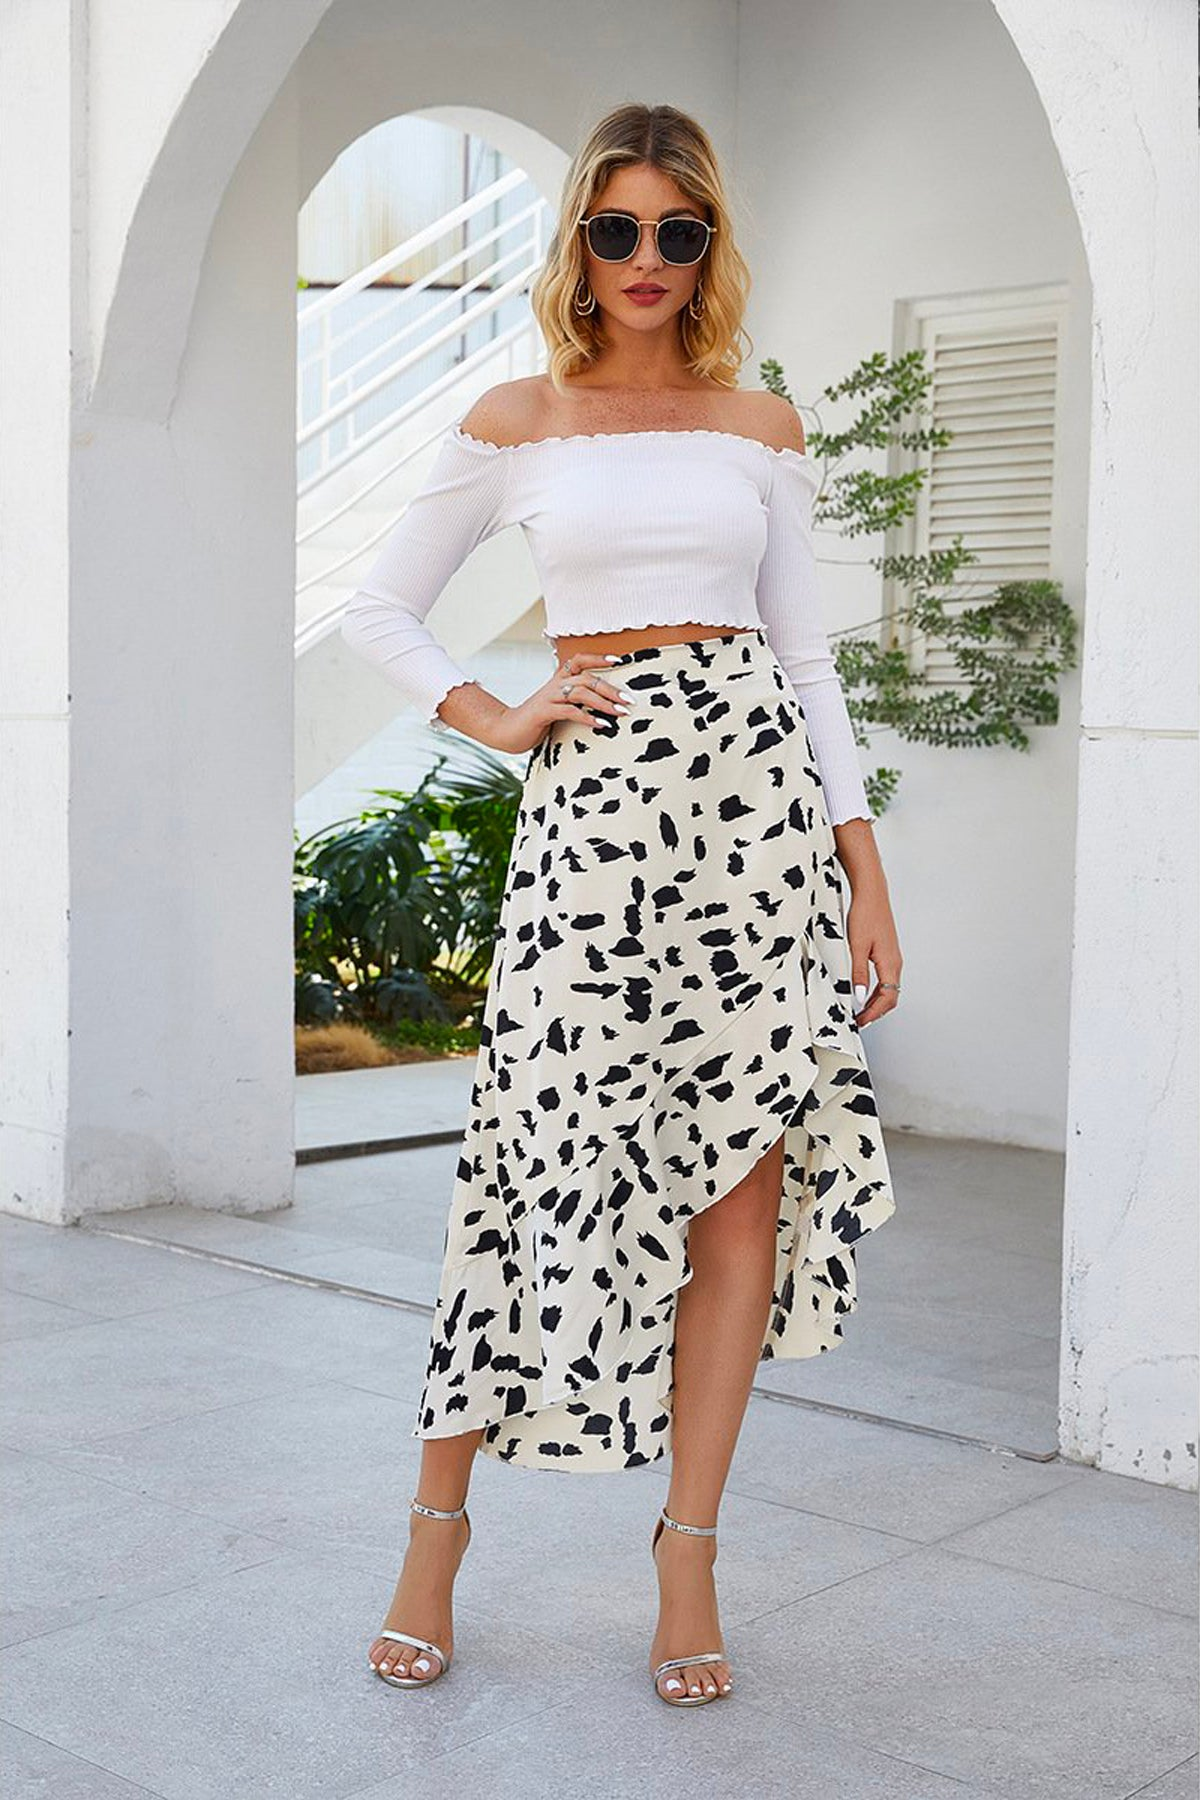 Fray High Waist Leopard Ruffle Skirt White - Fashion Movements skirts